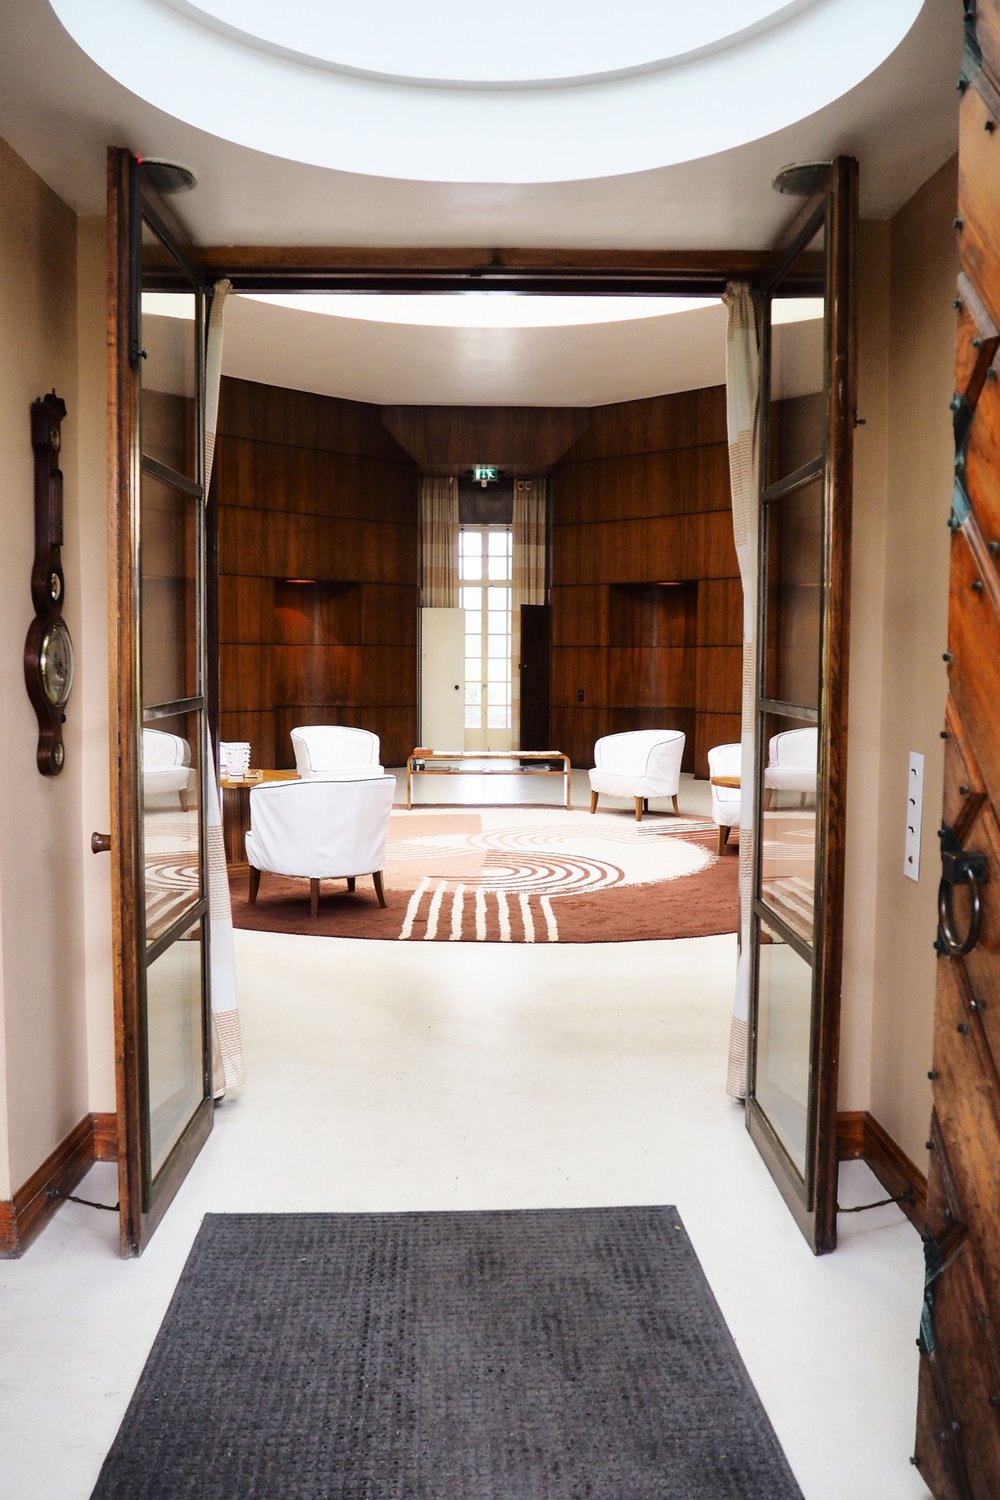 a lesson in art deco interiors at eltham palace sarah akwisombe